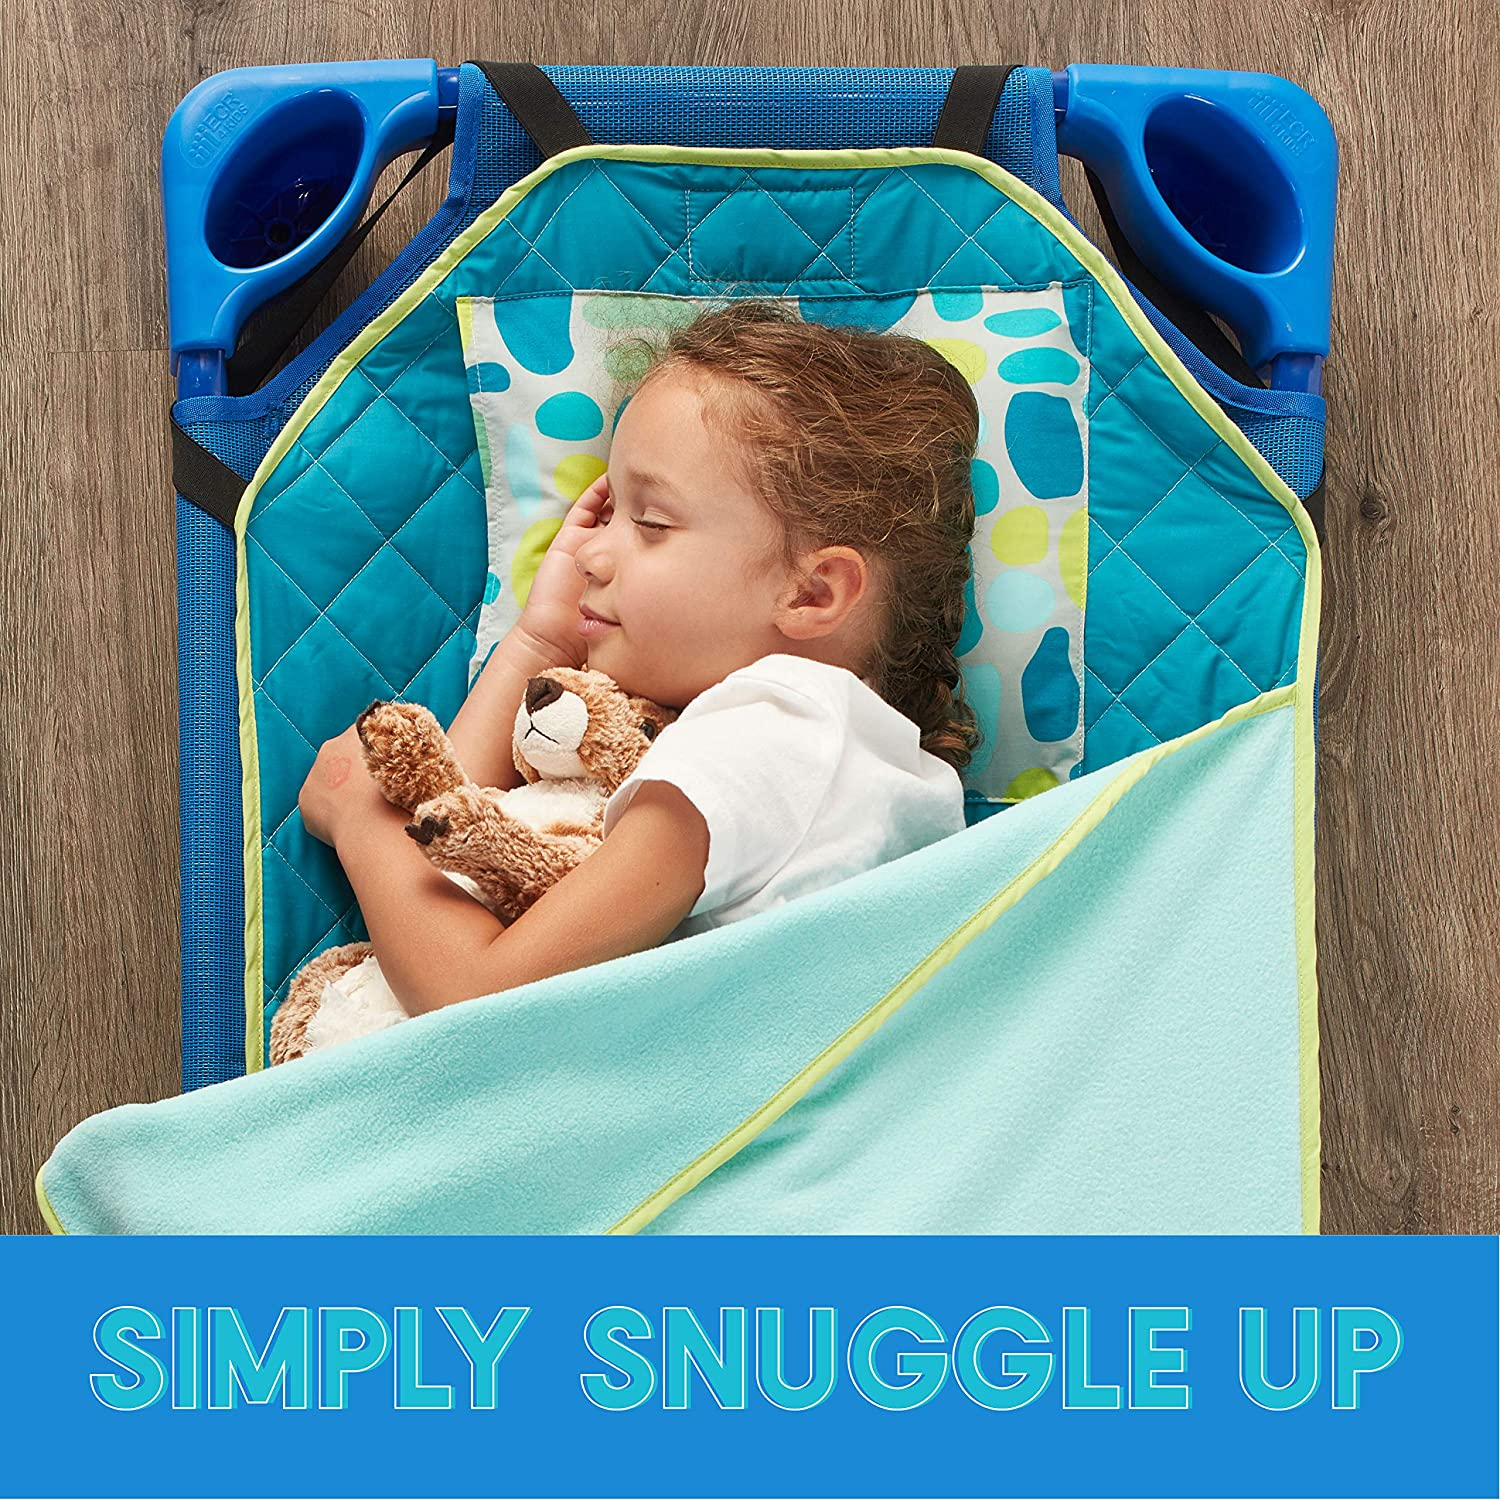 All-in-One Nap Bundle with Liner ECR4Kids Toddler Nap Mat Companion Blanket and Pillow Loopty Loop Pattern